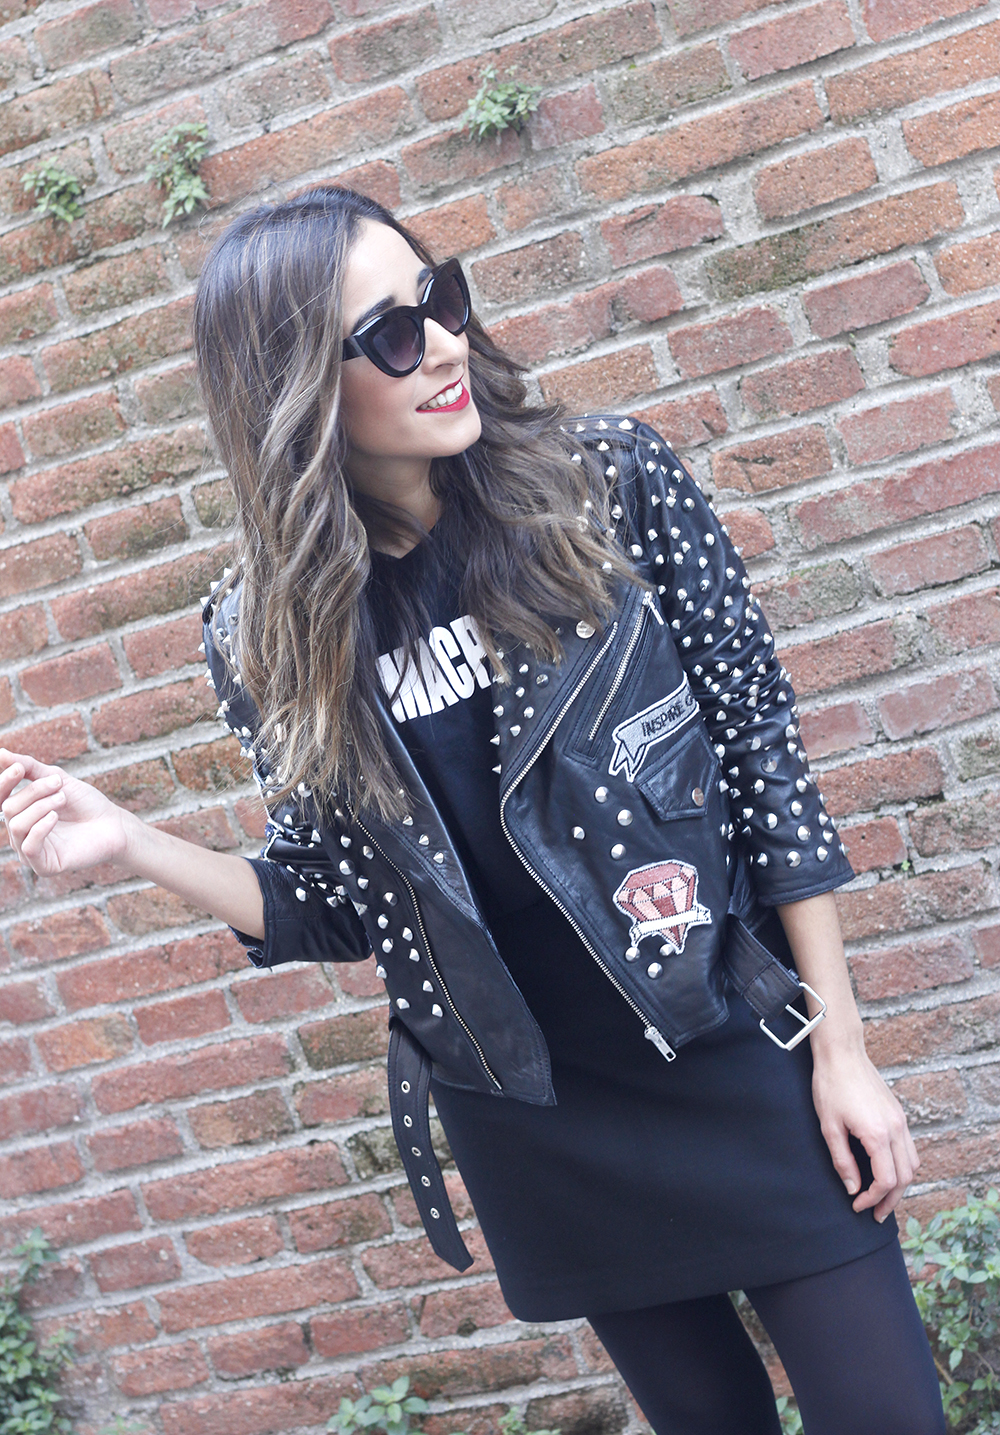 Leather jacket with studs and patches black skirt heels style fashion outfit08